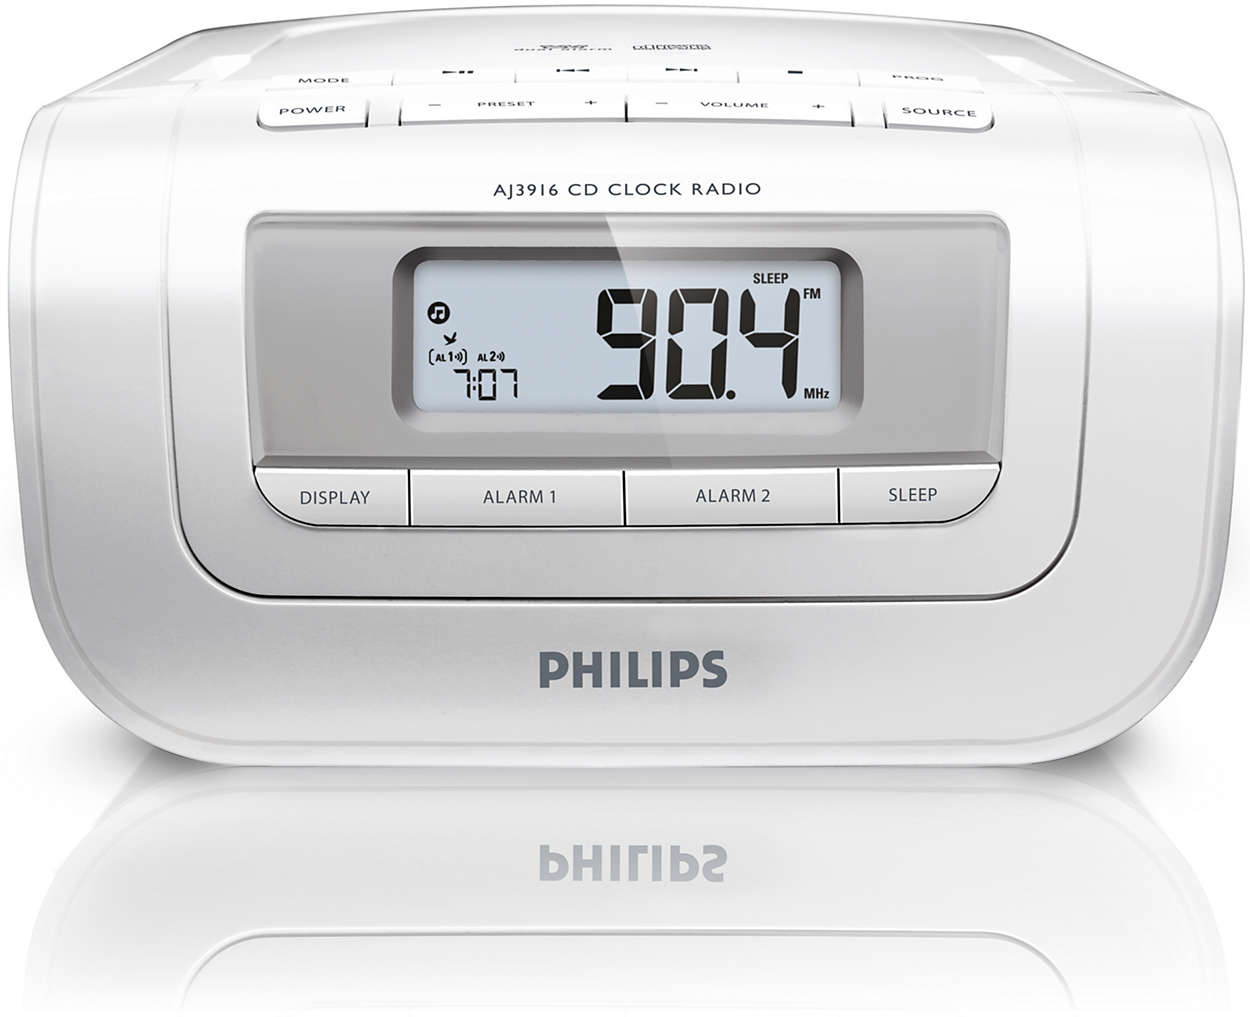 radio r veil avec tuner num rique aj3916 12 philips. Black Bedroom Furniture Sets. Home Design Ideas